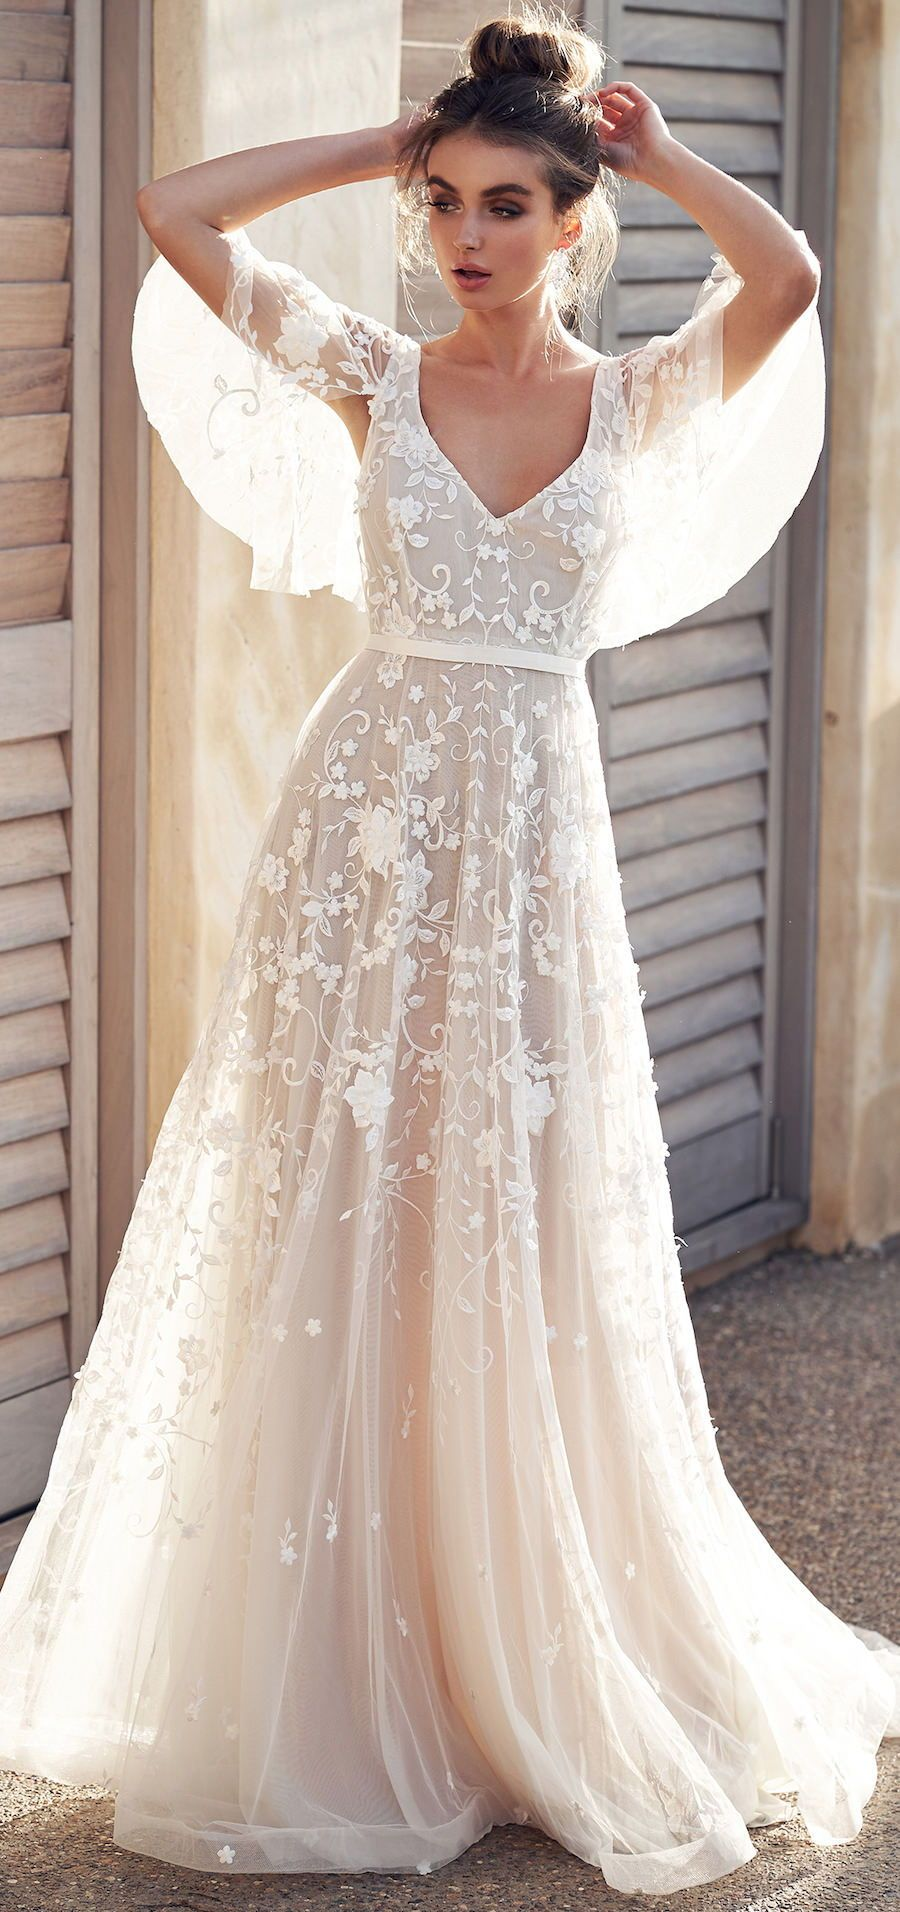 Wedding Dress By Anna Campbell Embroidered Tulle Embellished With Flowers And Petals Gl Beading Sequins The Amelie Is Pure Romance